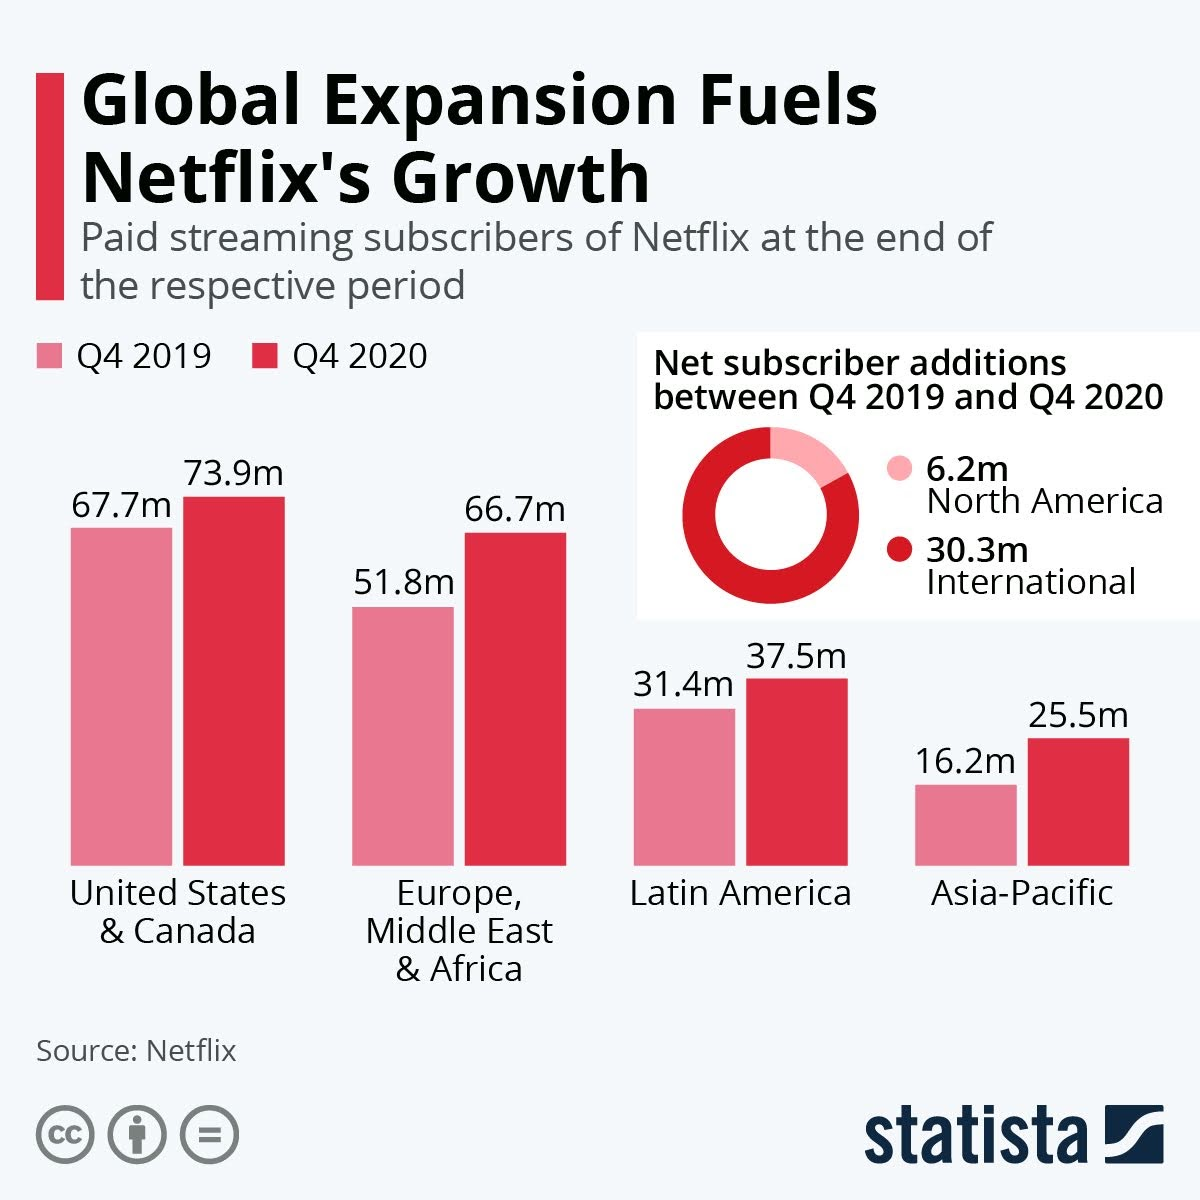 global-expansion-fuels-netflixs-growth-infographic